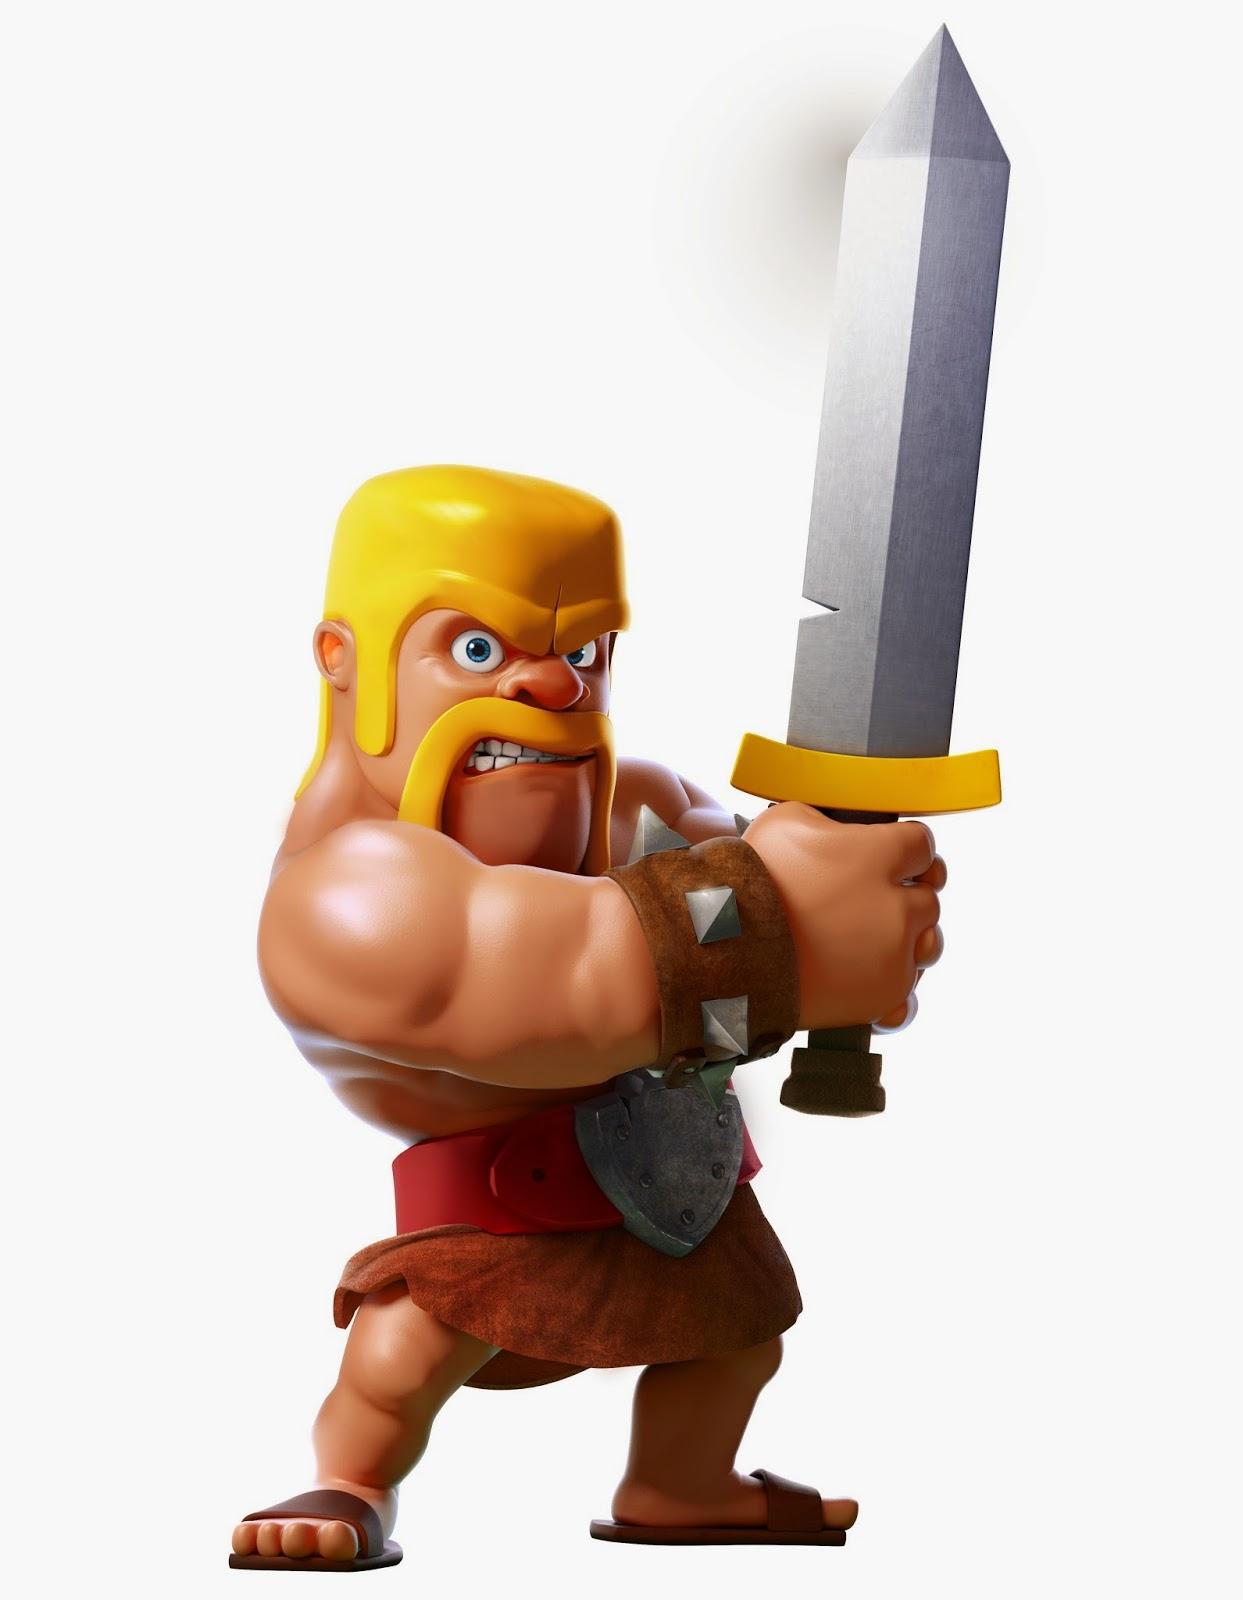 Clash of Clans Barbarian Clash of Clans Wallpaper 1243x1600